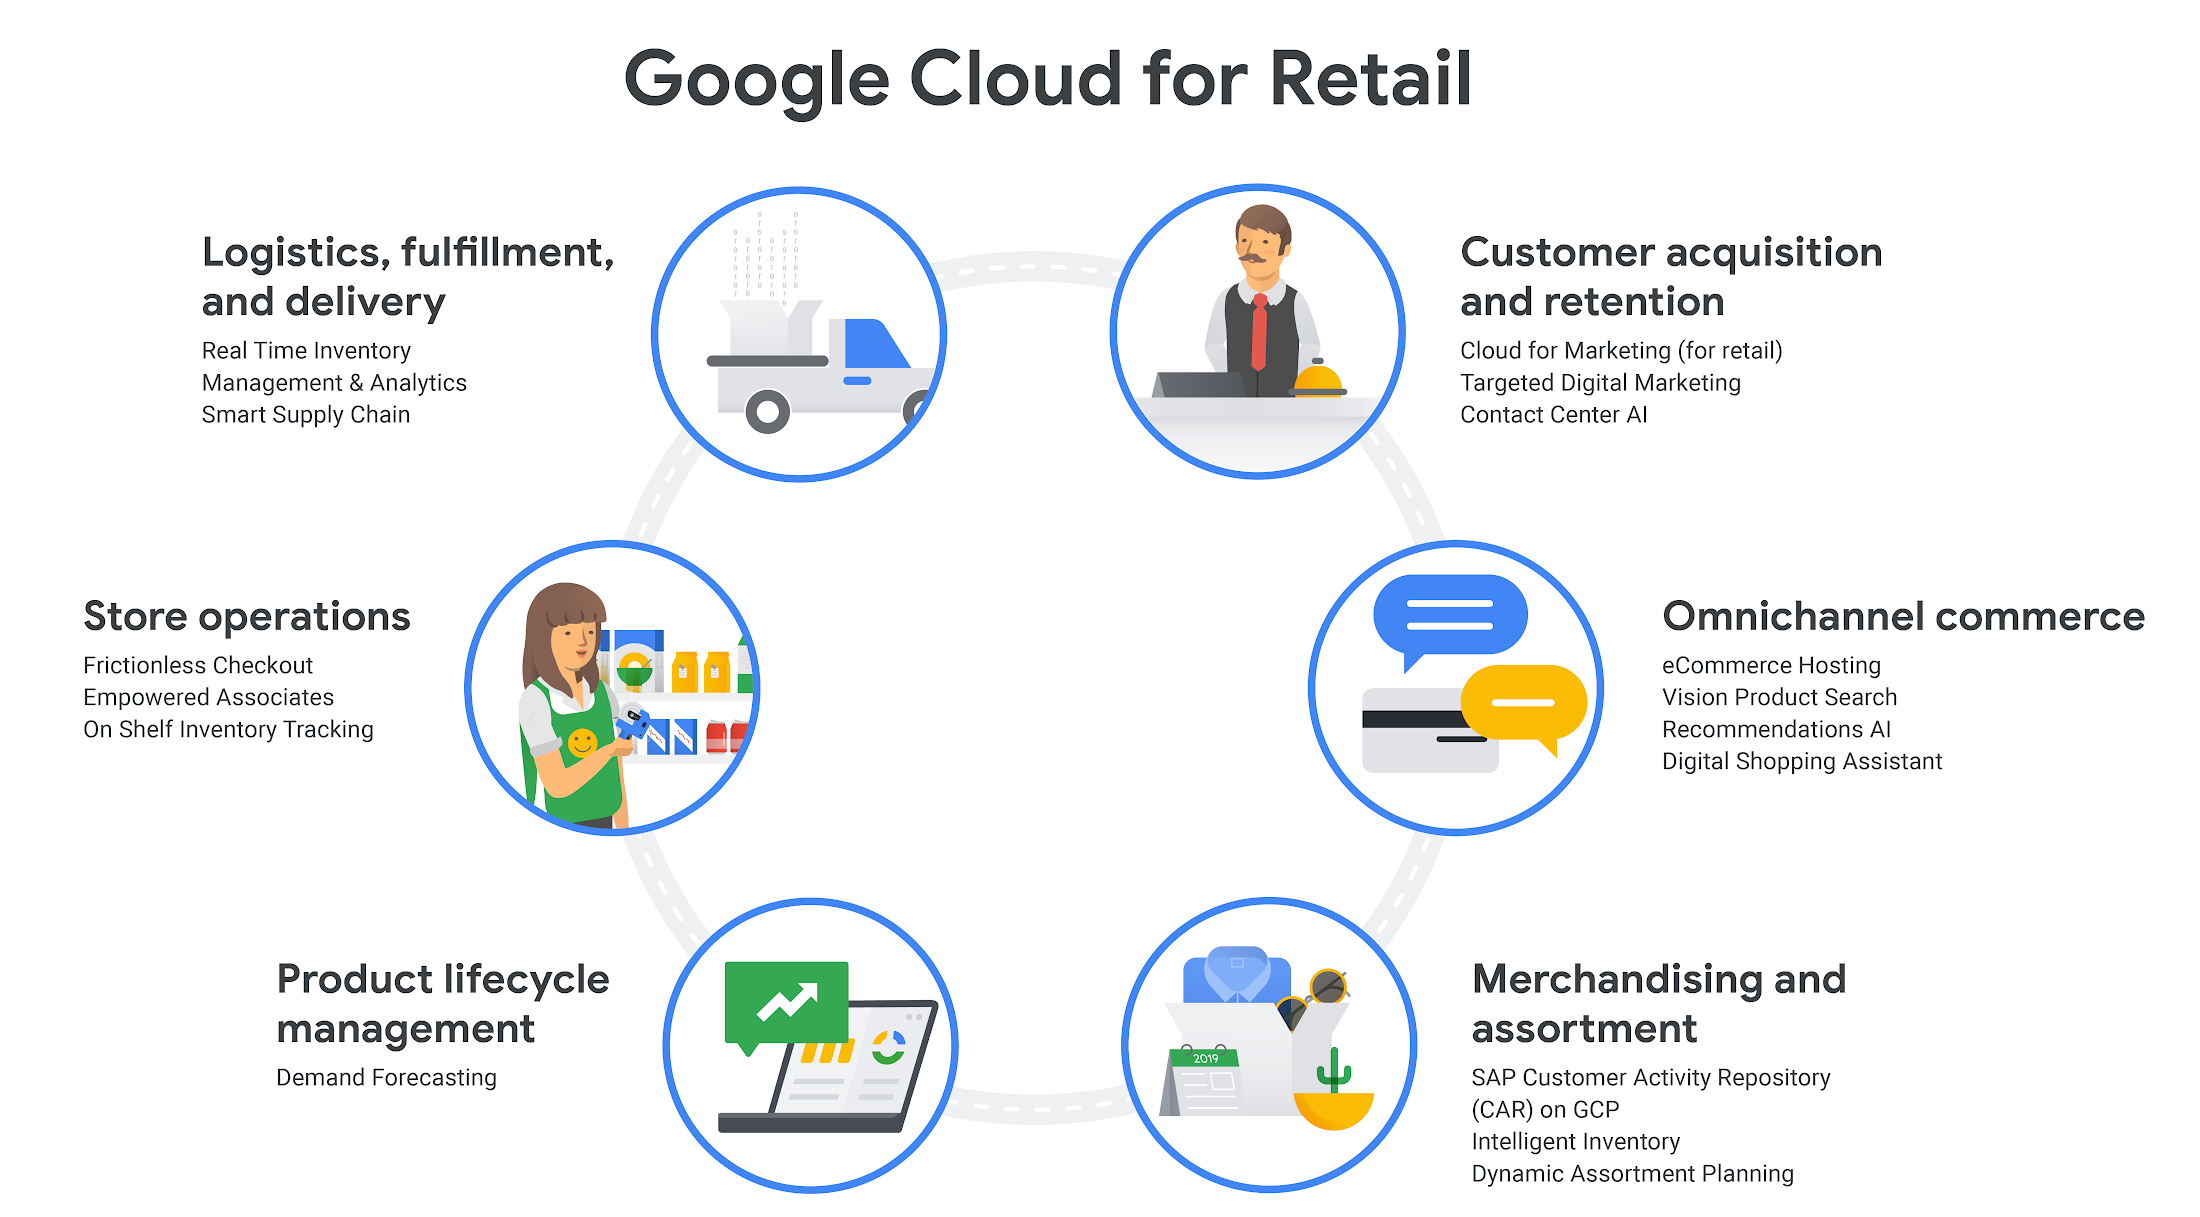 Google Cloud for Retail: Helping retailers transform their